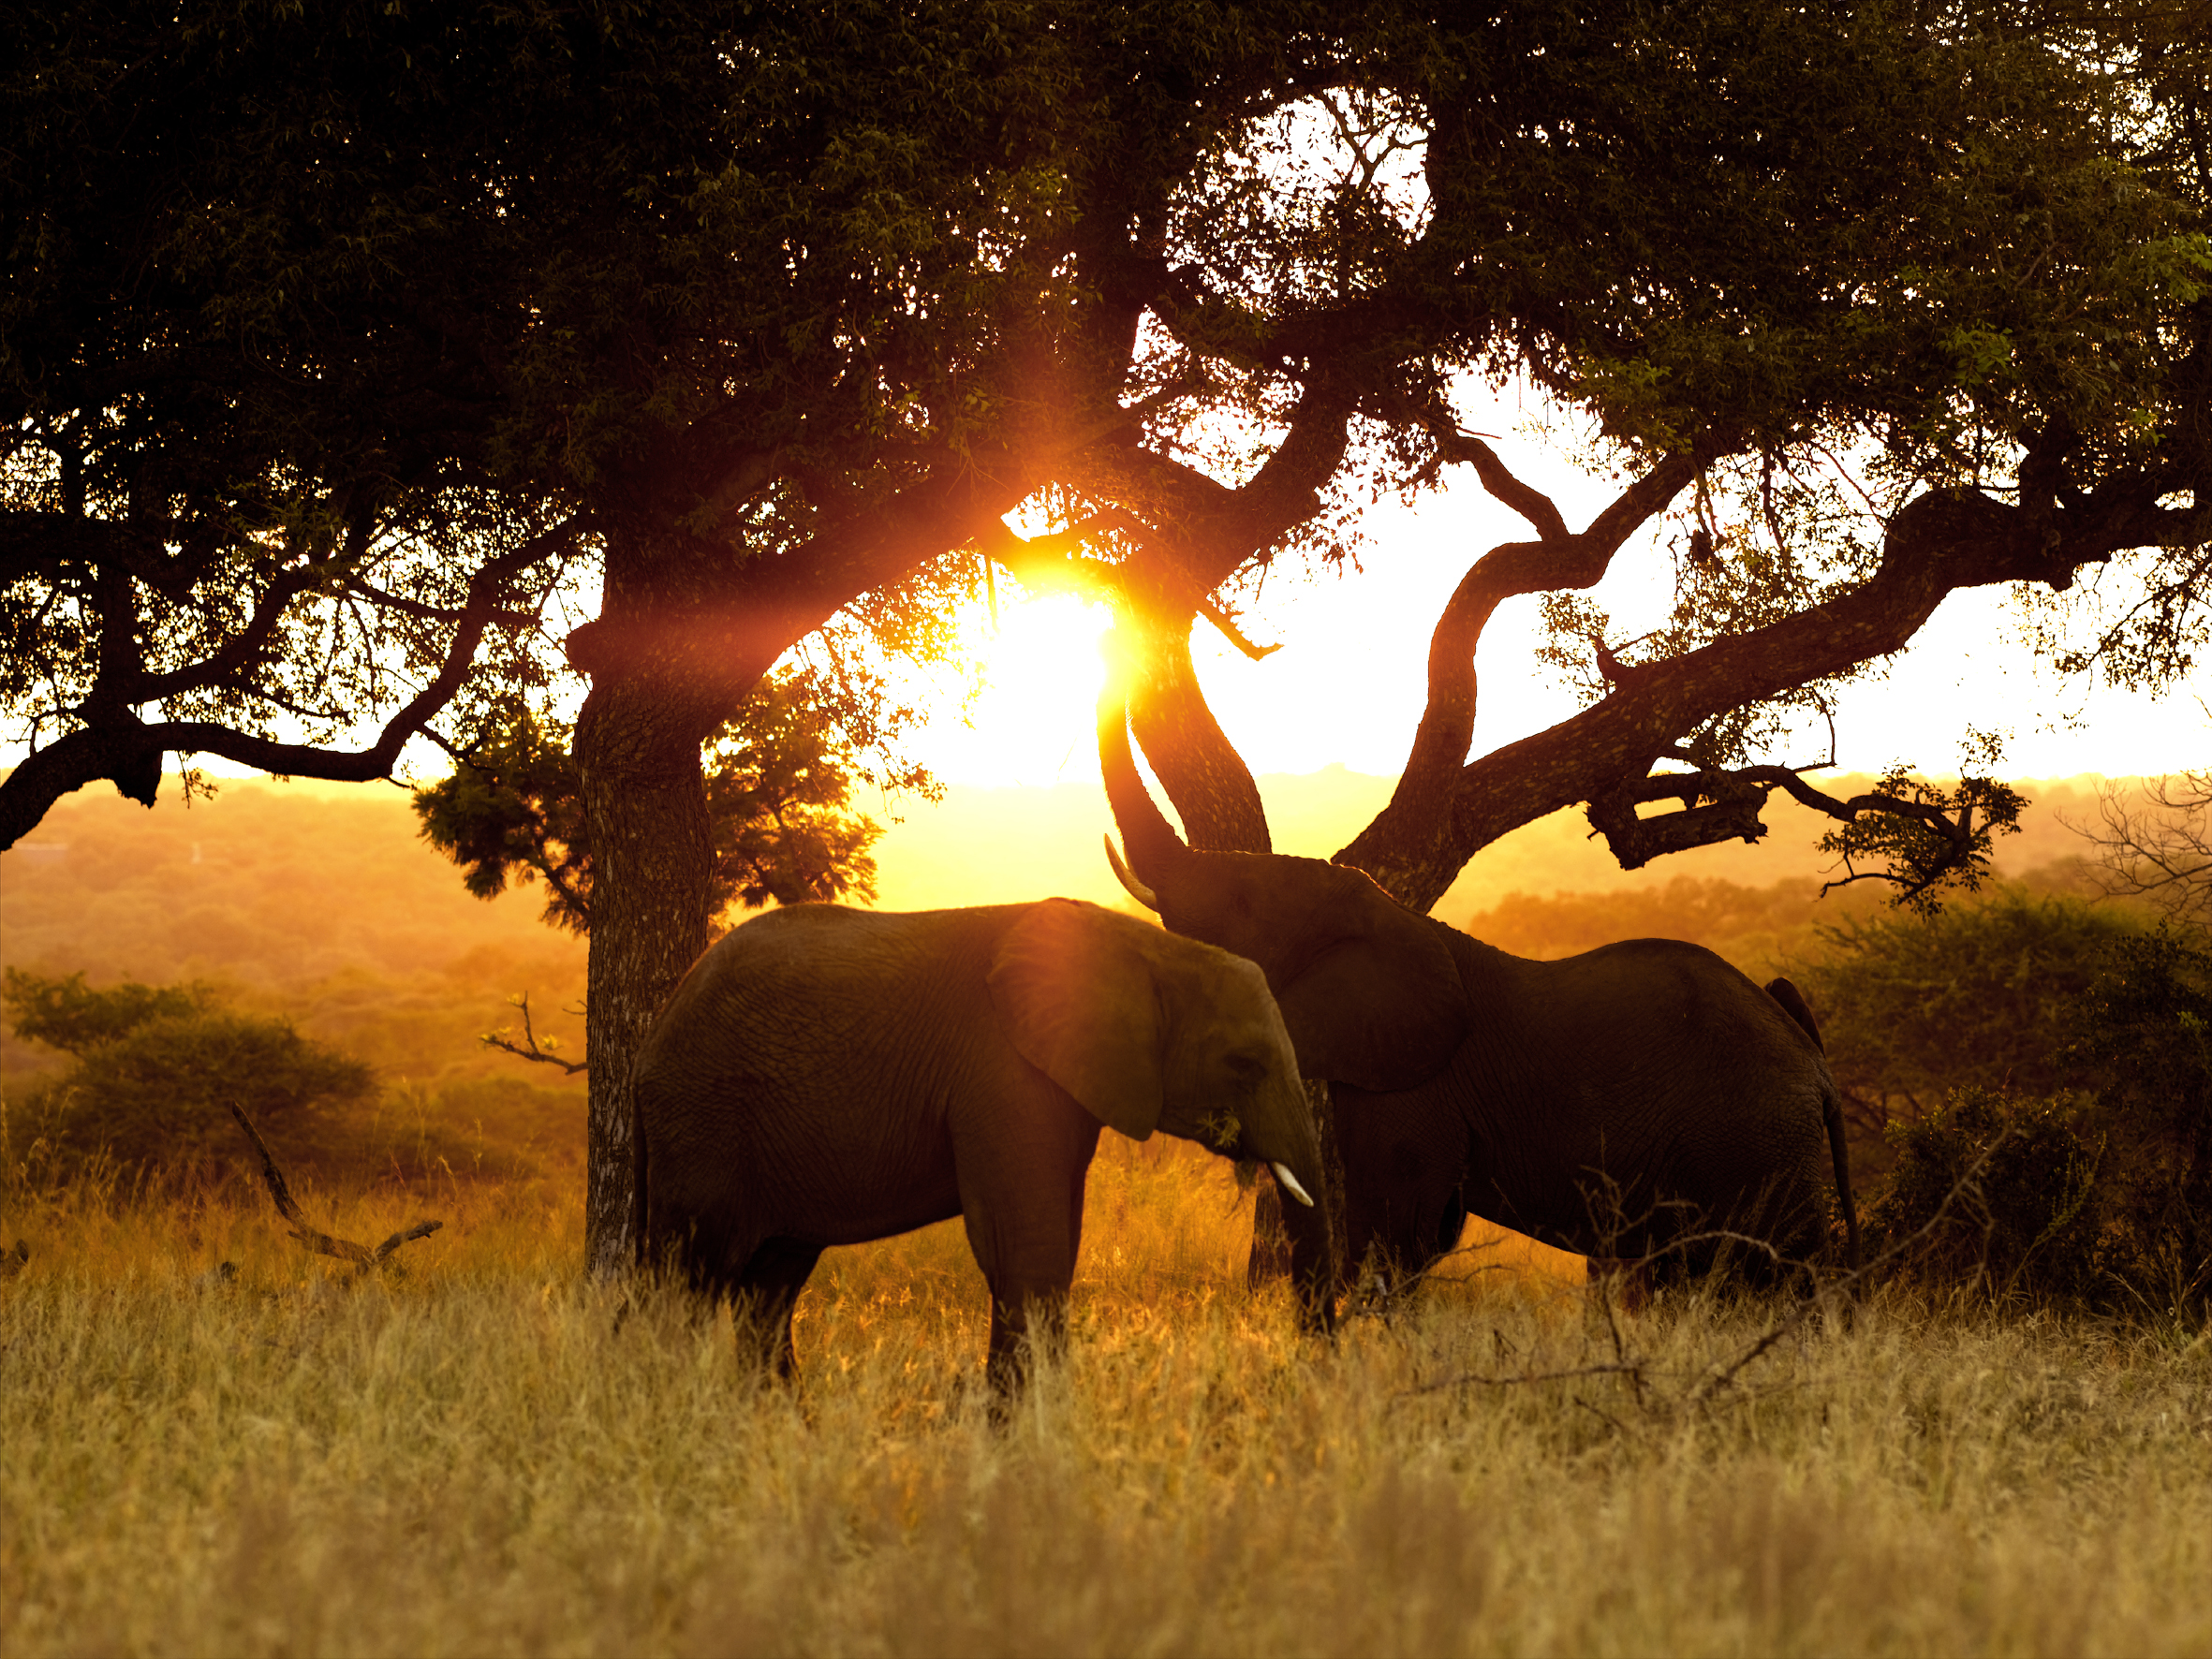 Elephants and marula trees 1 (HR)